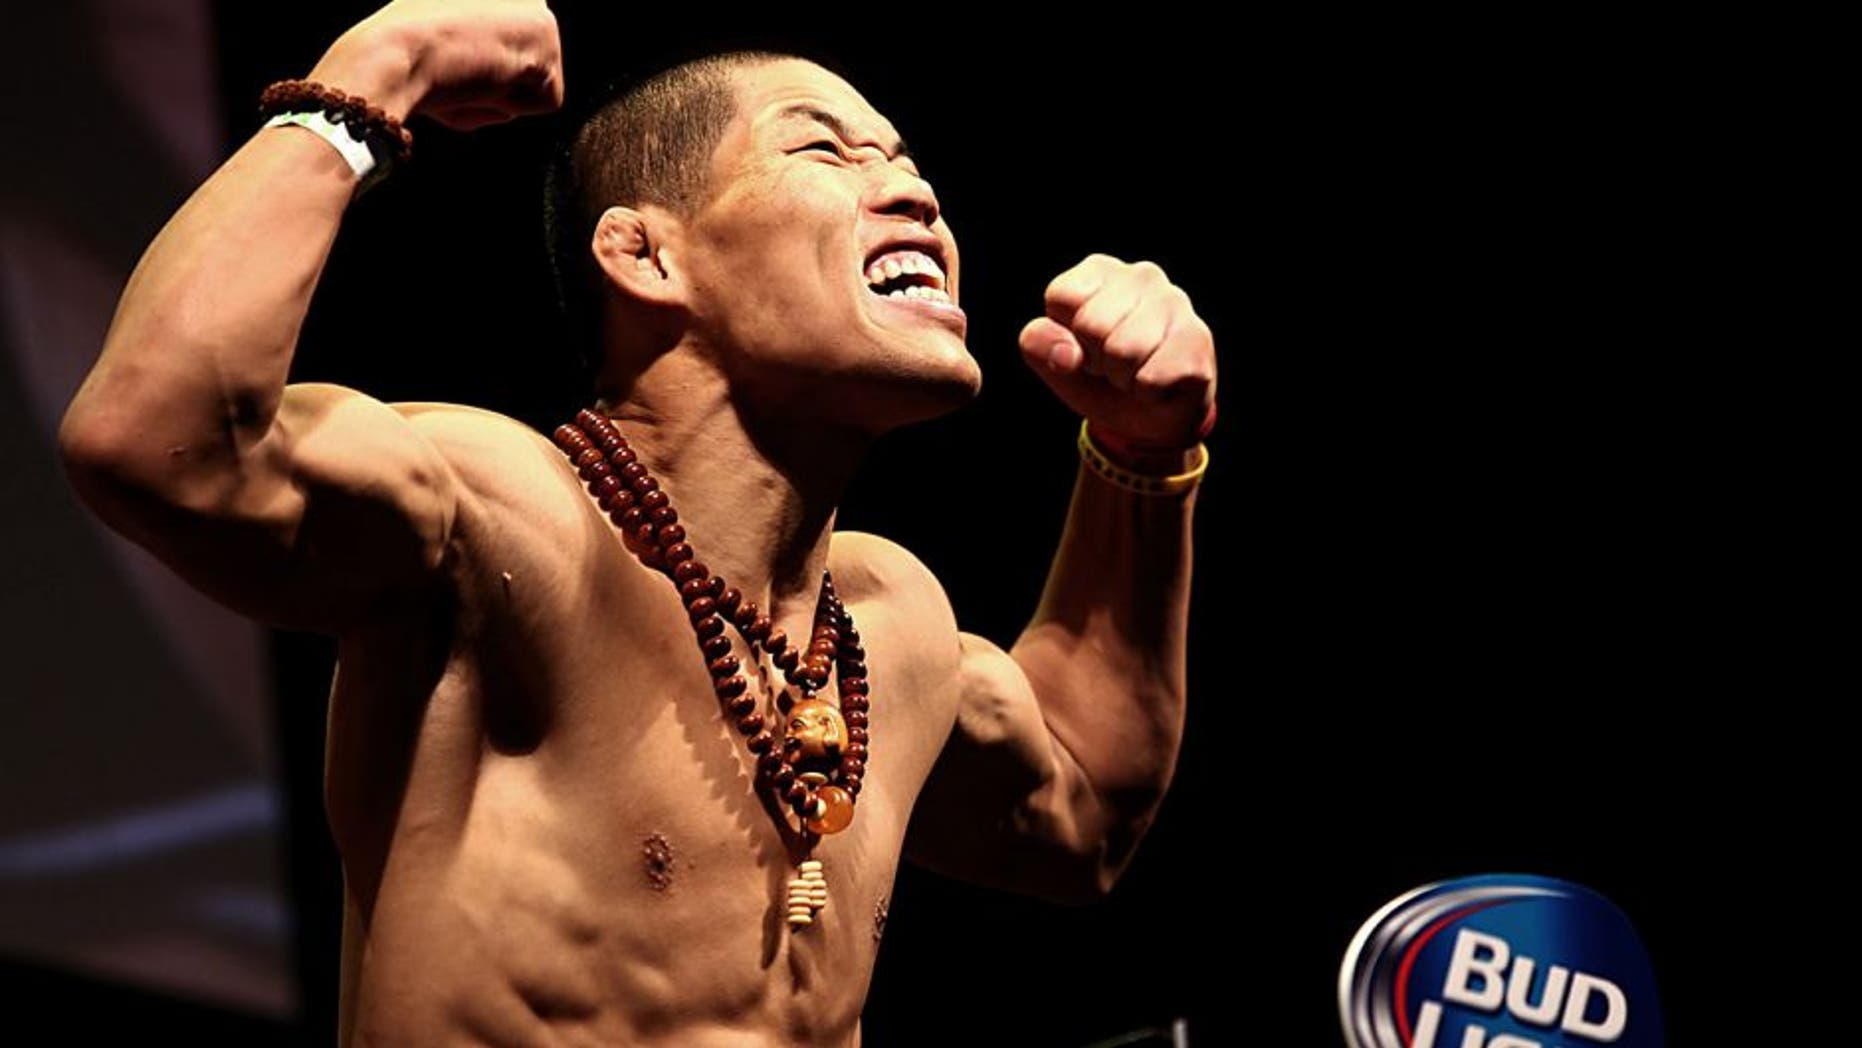 LAS VEGAS, NV - MAY 23: Li Jingliang of China steps on the scale during the UFC 173 weigh-in event at the MGM Grand Garden Arena on May 23, 2014 in Las Vegas, Nevada. (Photo by Brandon Magnus/Zuffa LLC/Zuffa LLC via Getty Images)